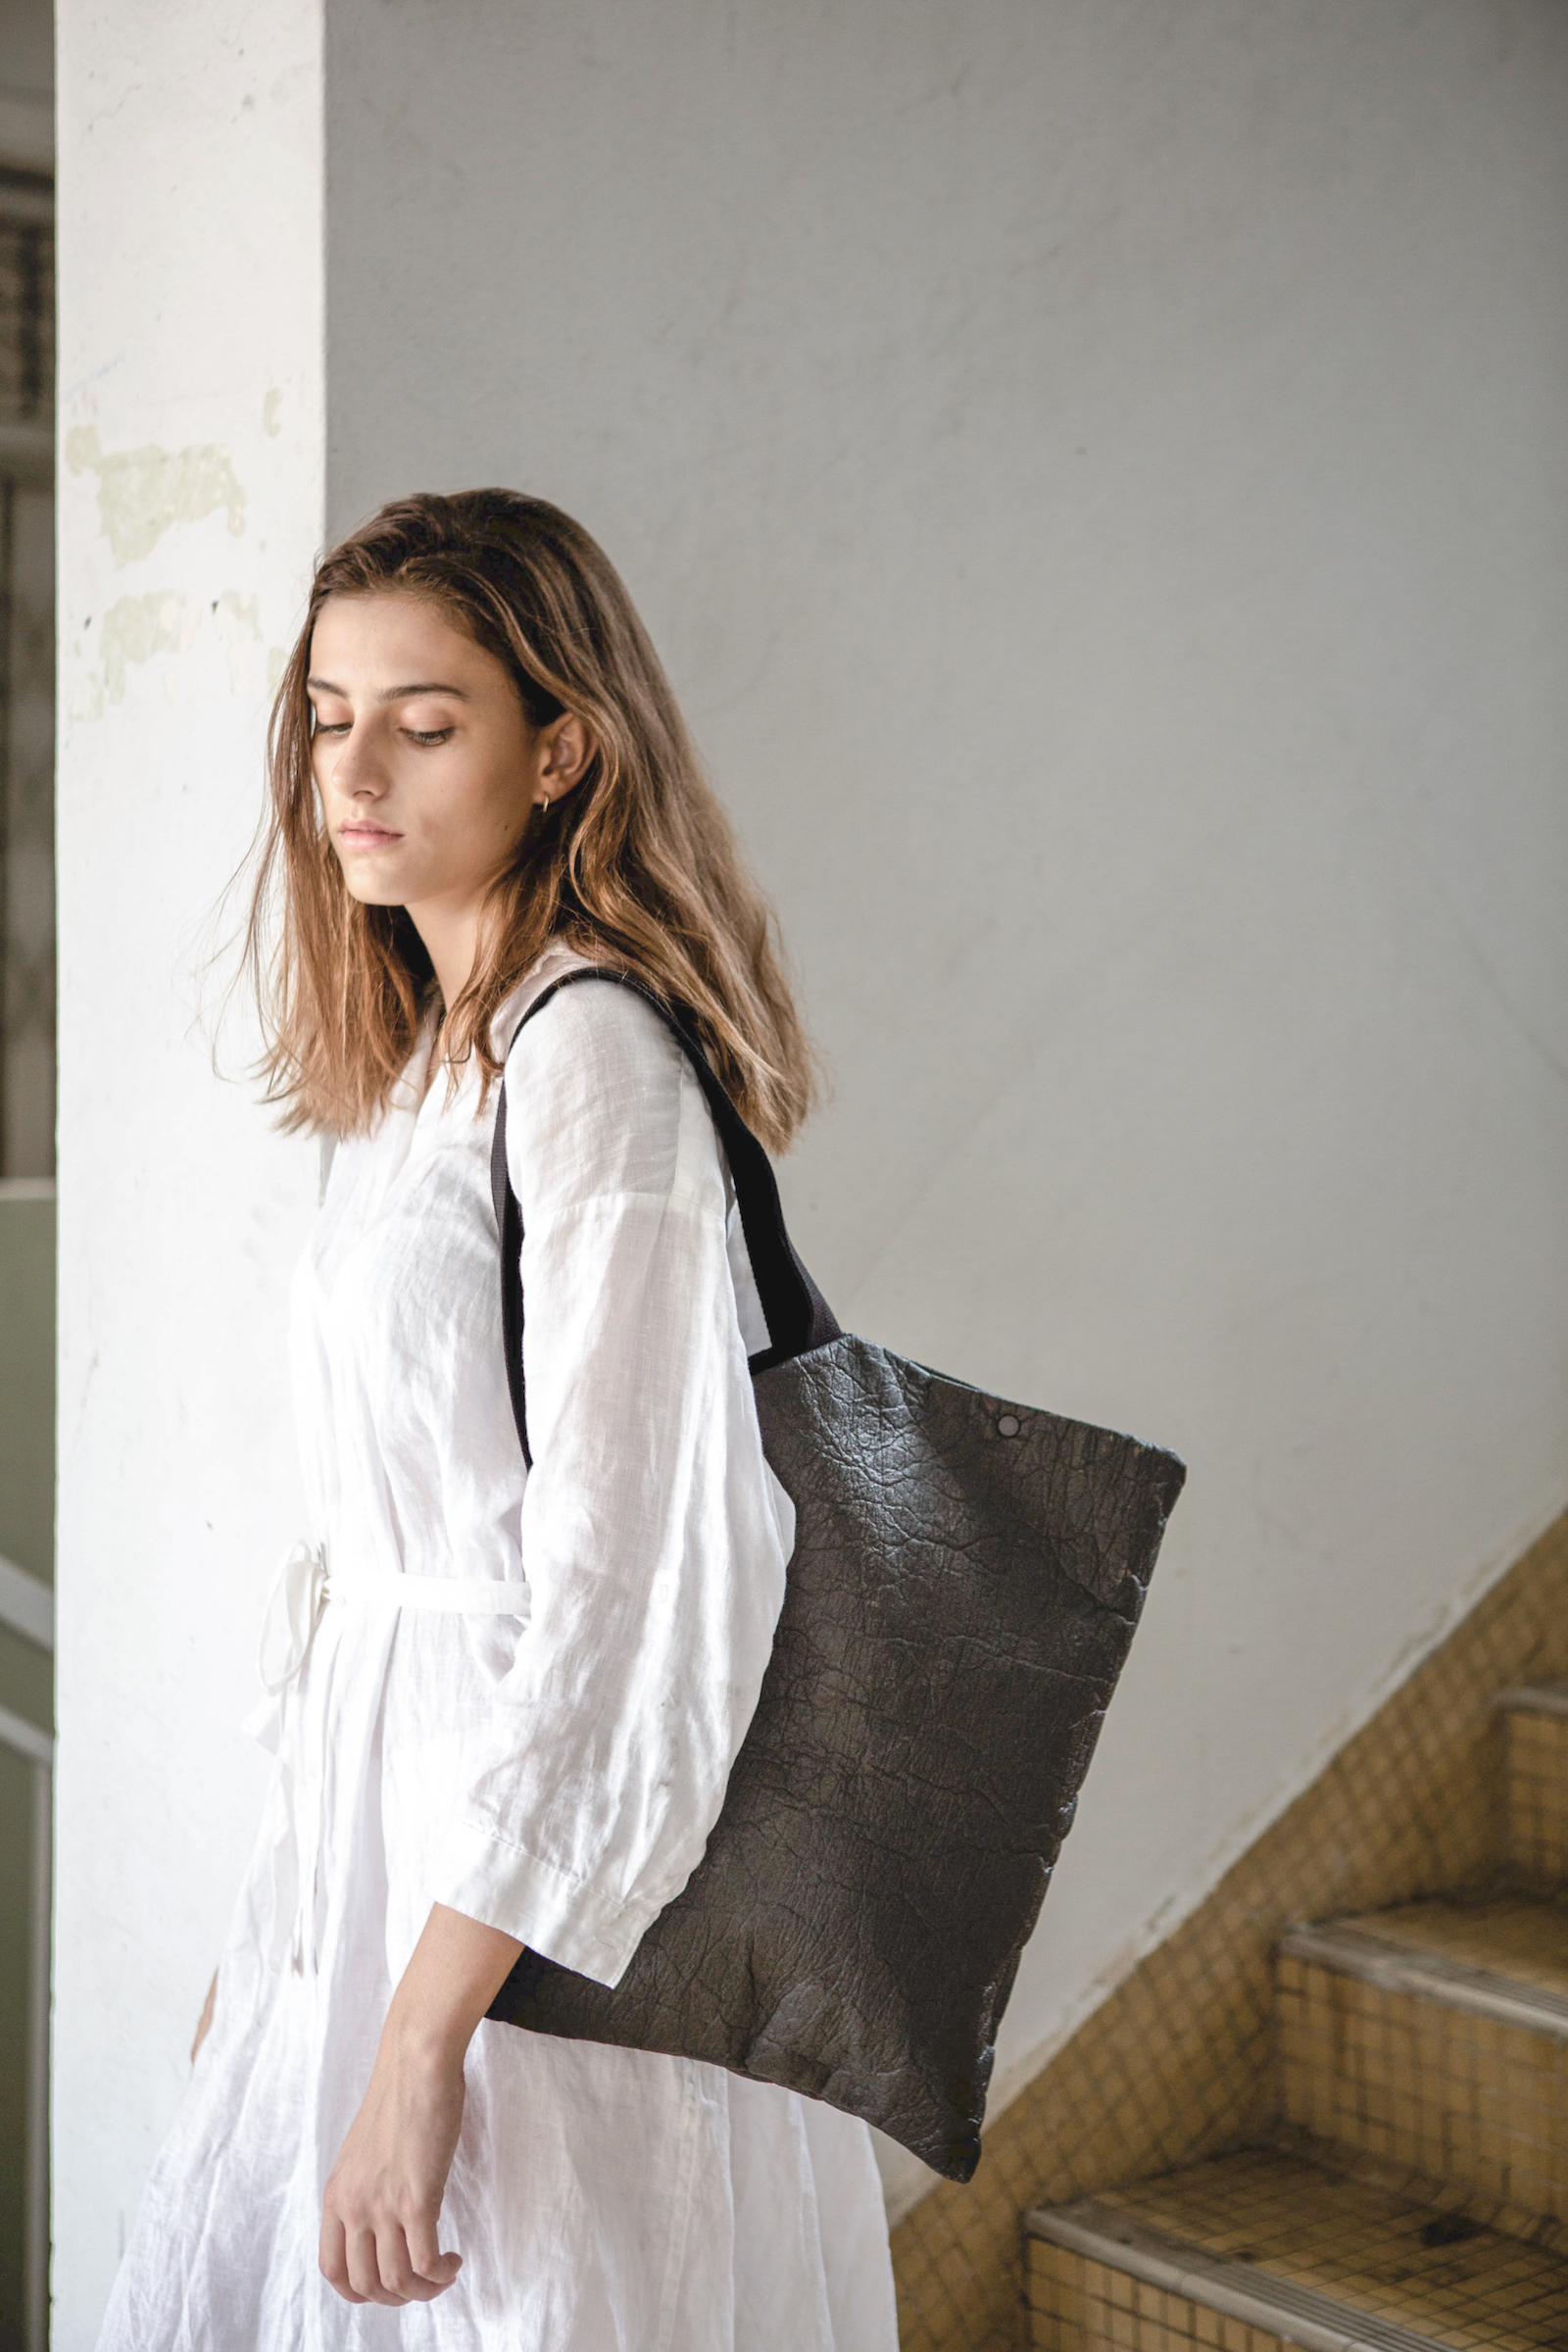 Piñatex DIAGONAL Tote Bag in Charcoal